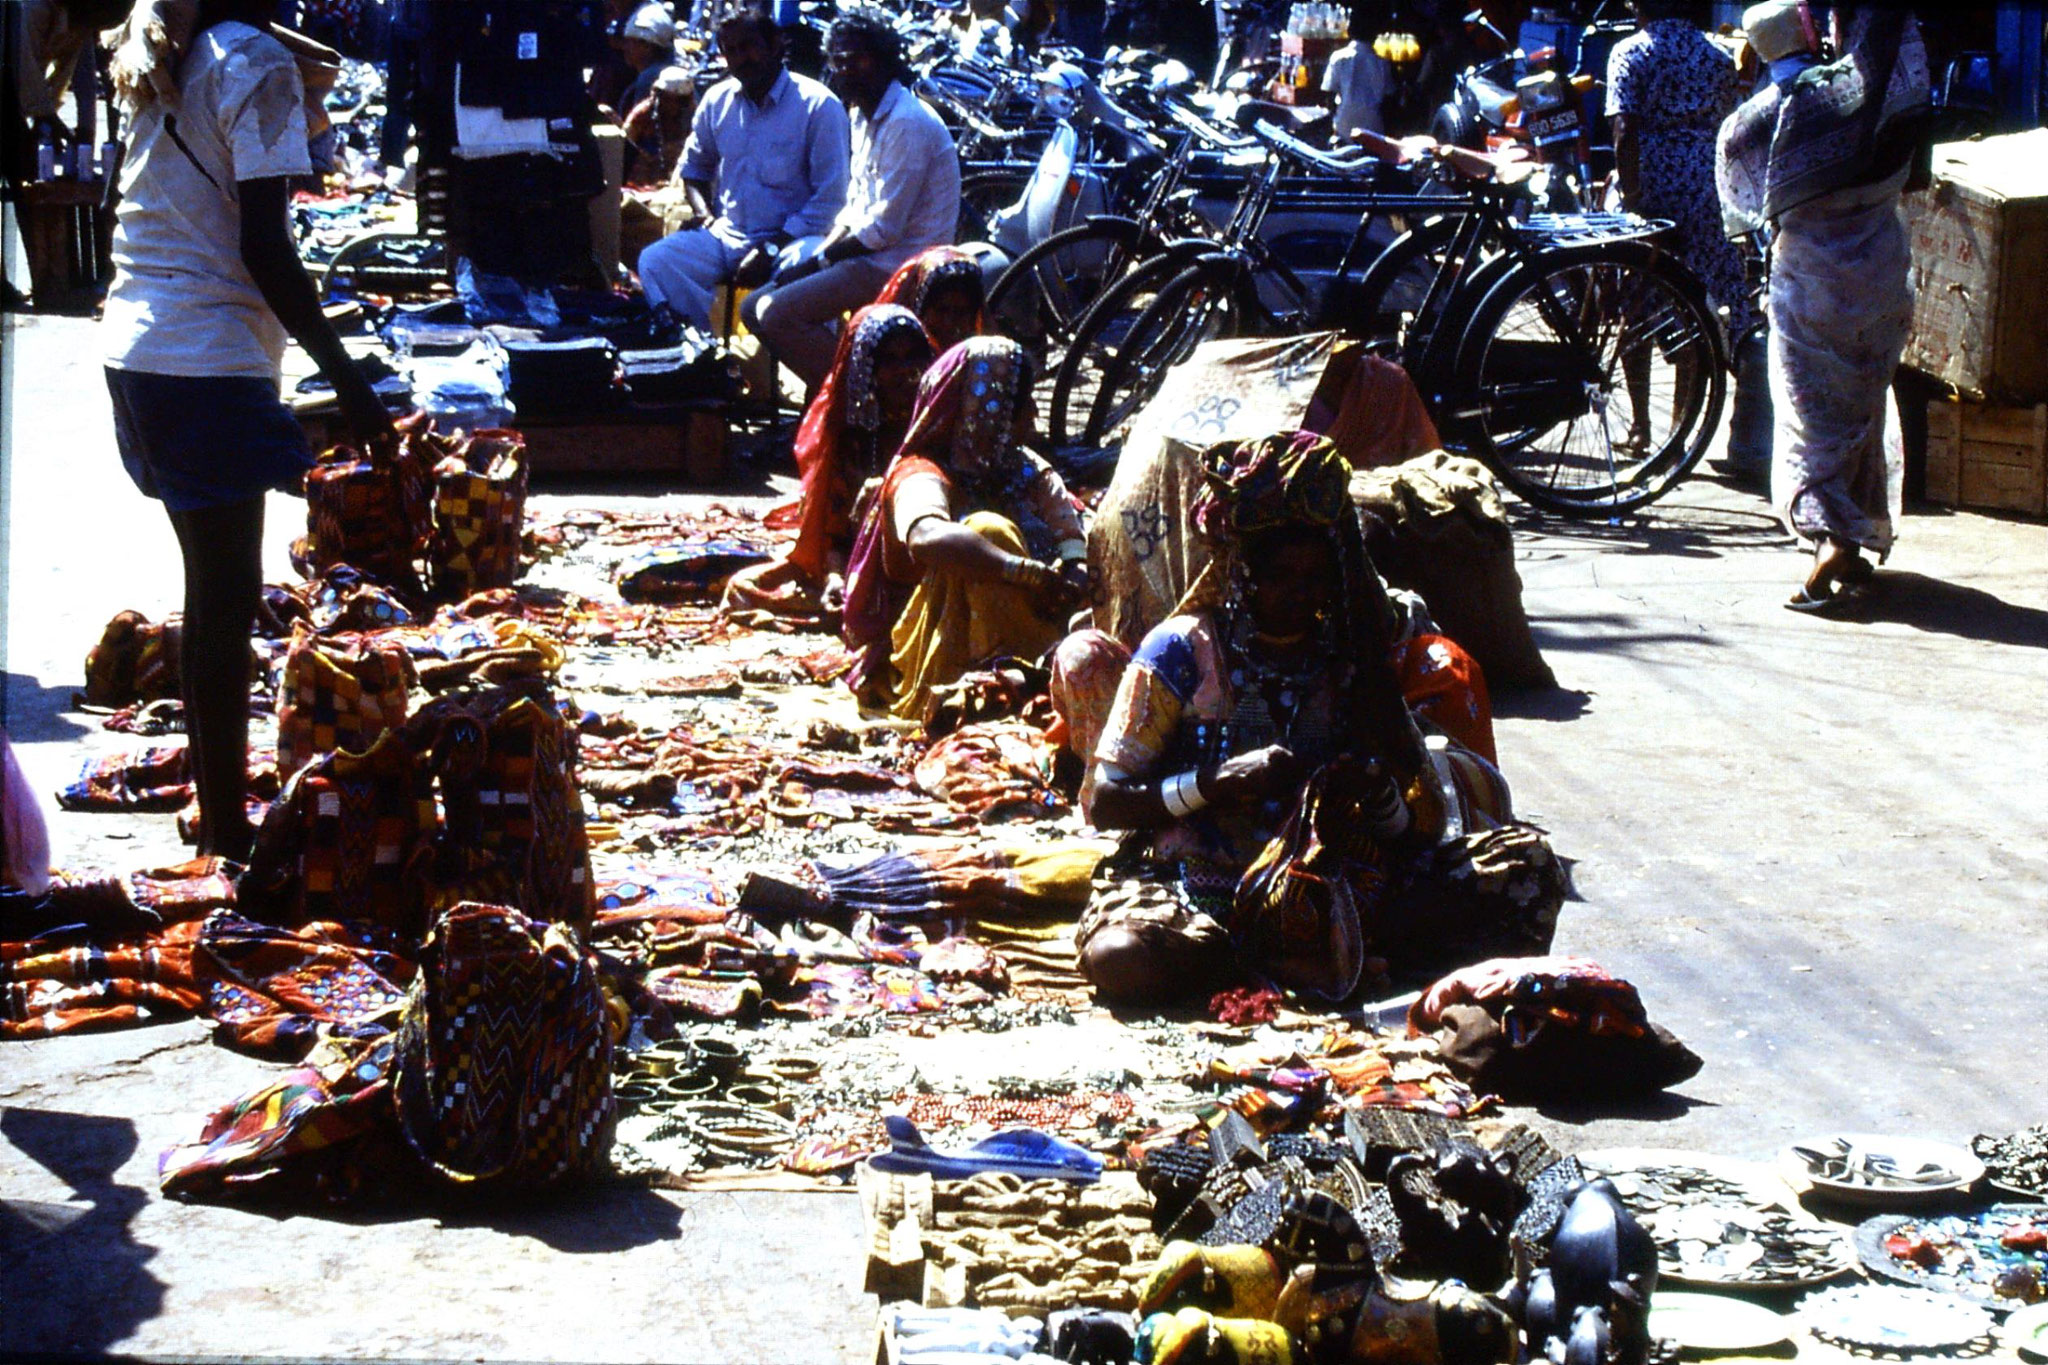 6/1/1990: 1: Mapusa market, traders from Rajasthan